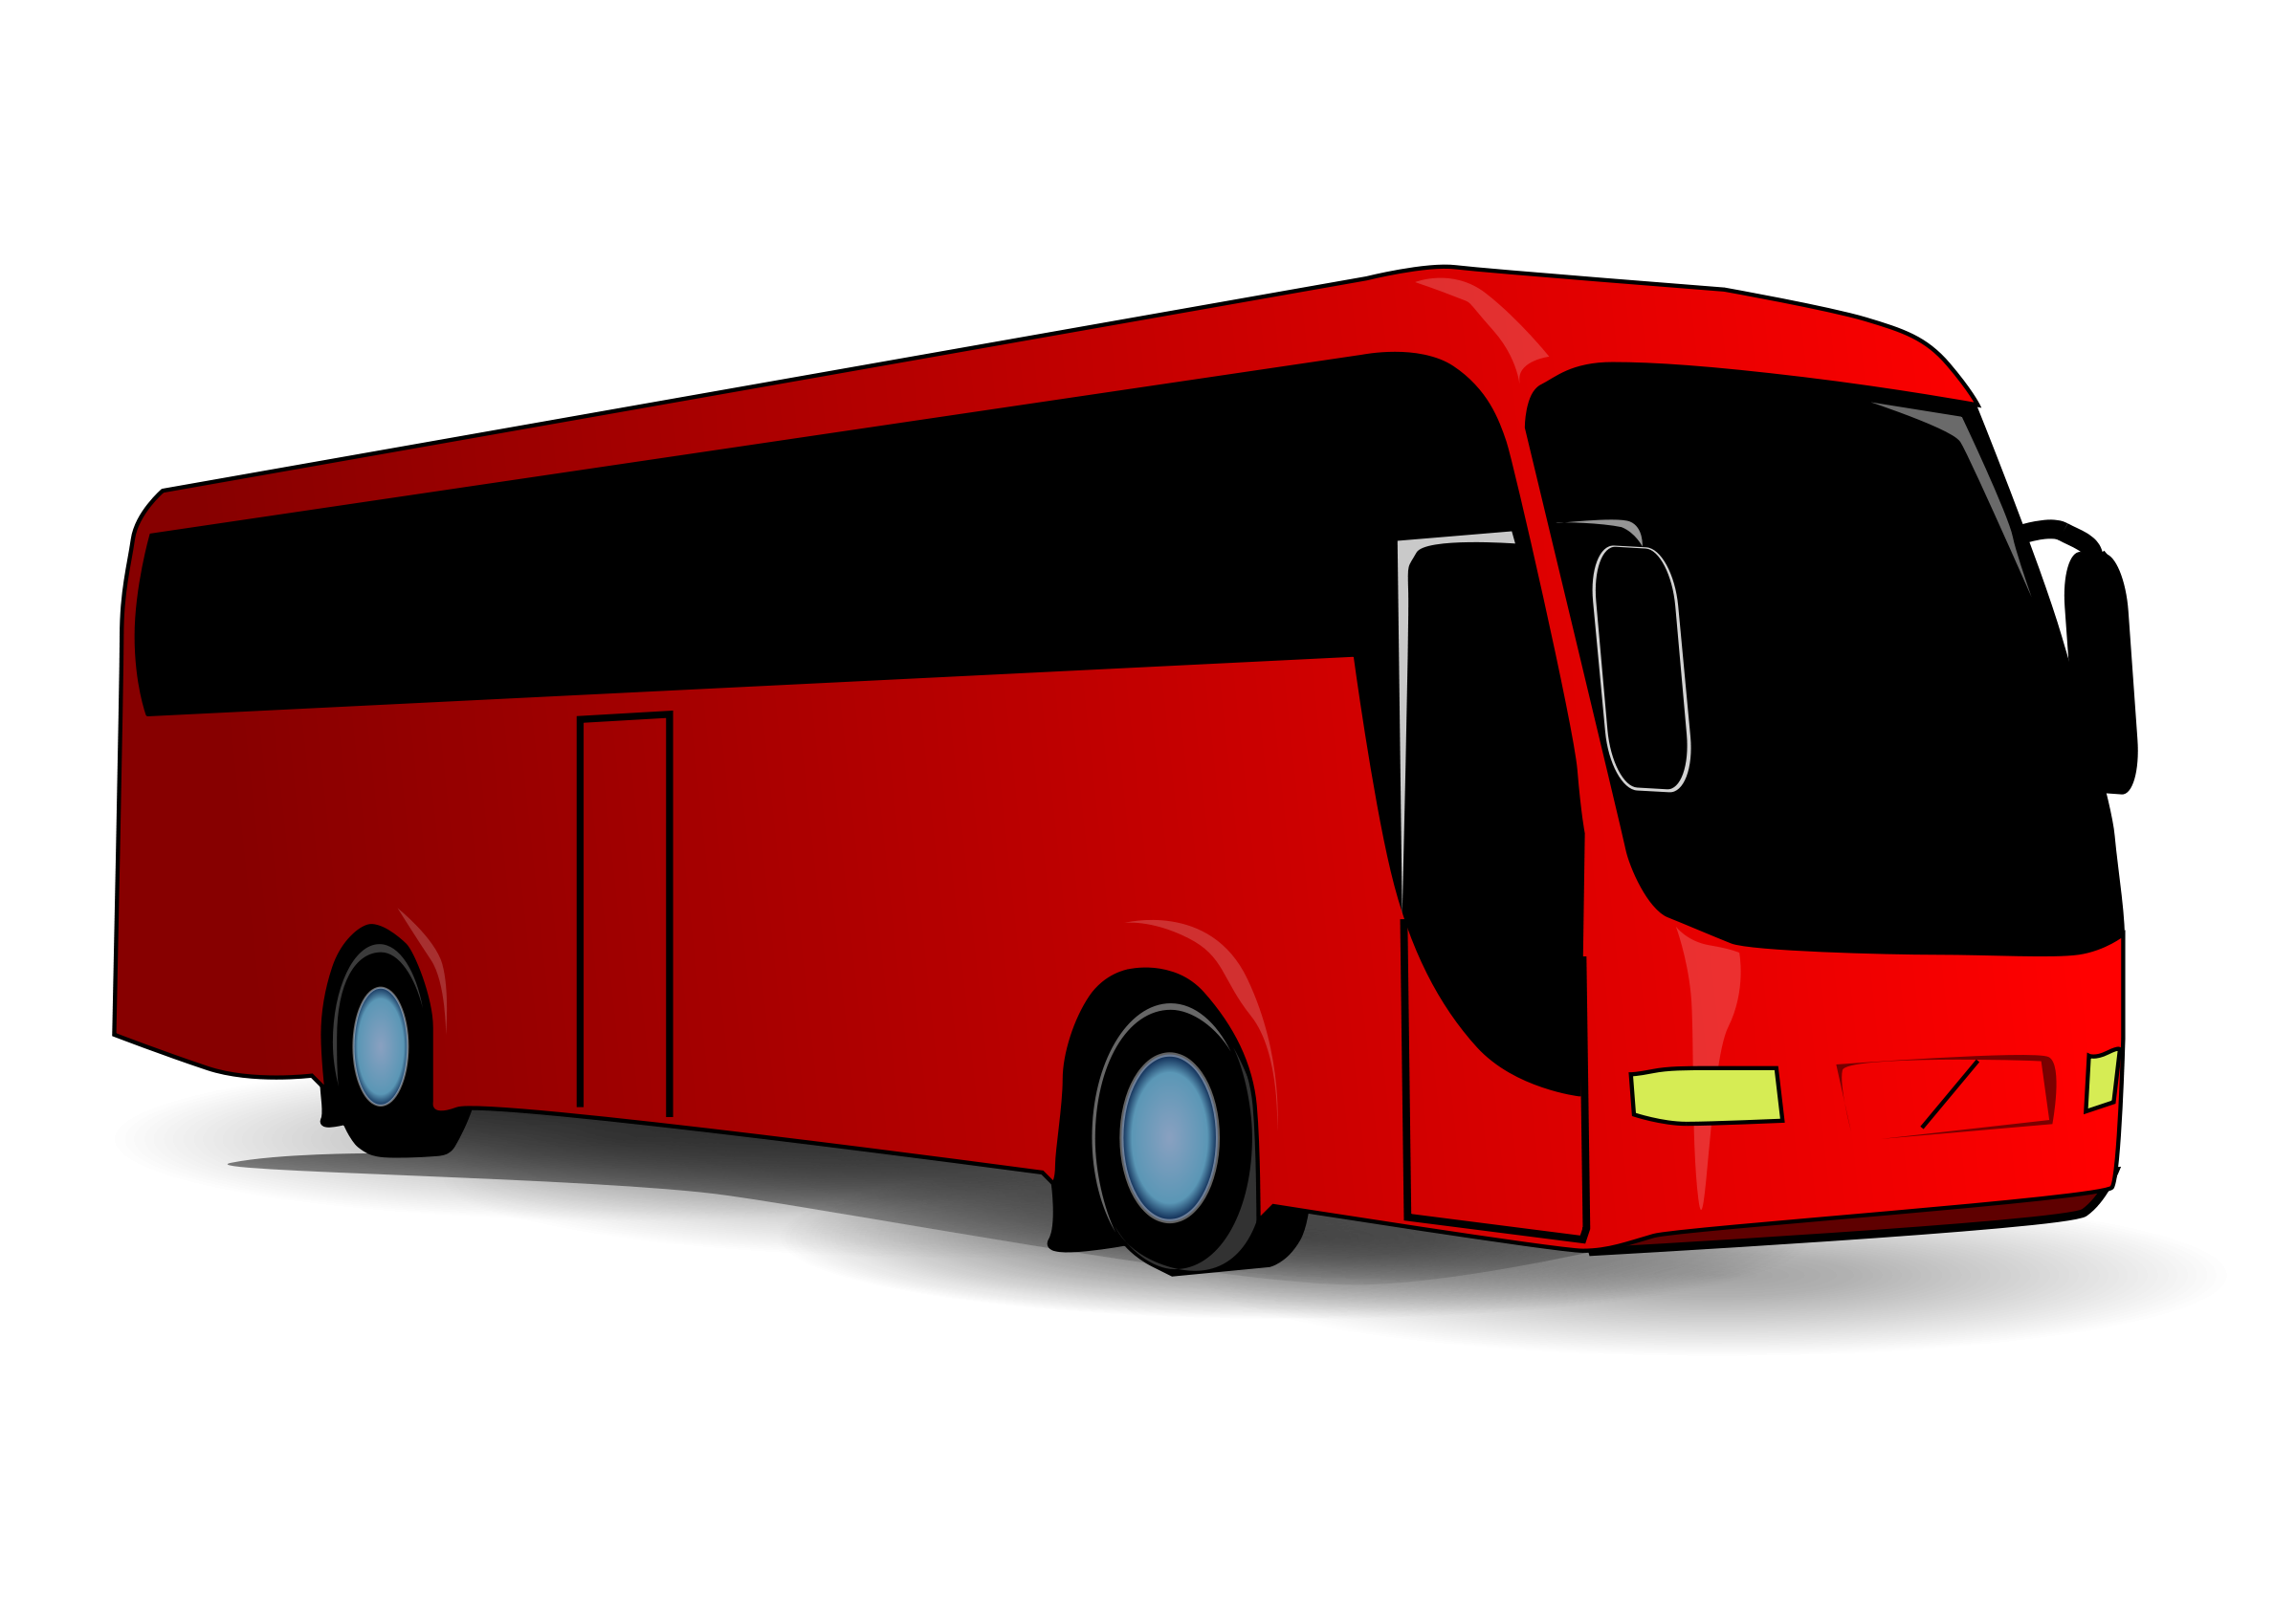 Bus Transparent PNG Pictures - Free Icons and PNG Backgrounds png download